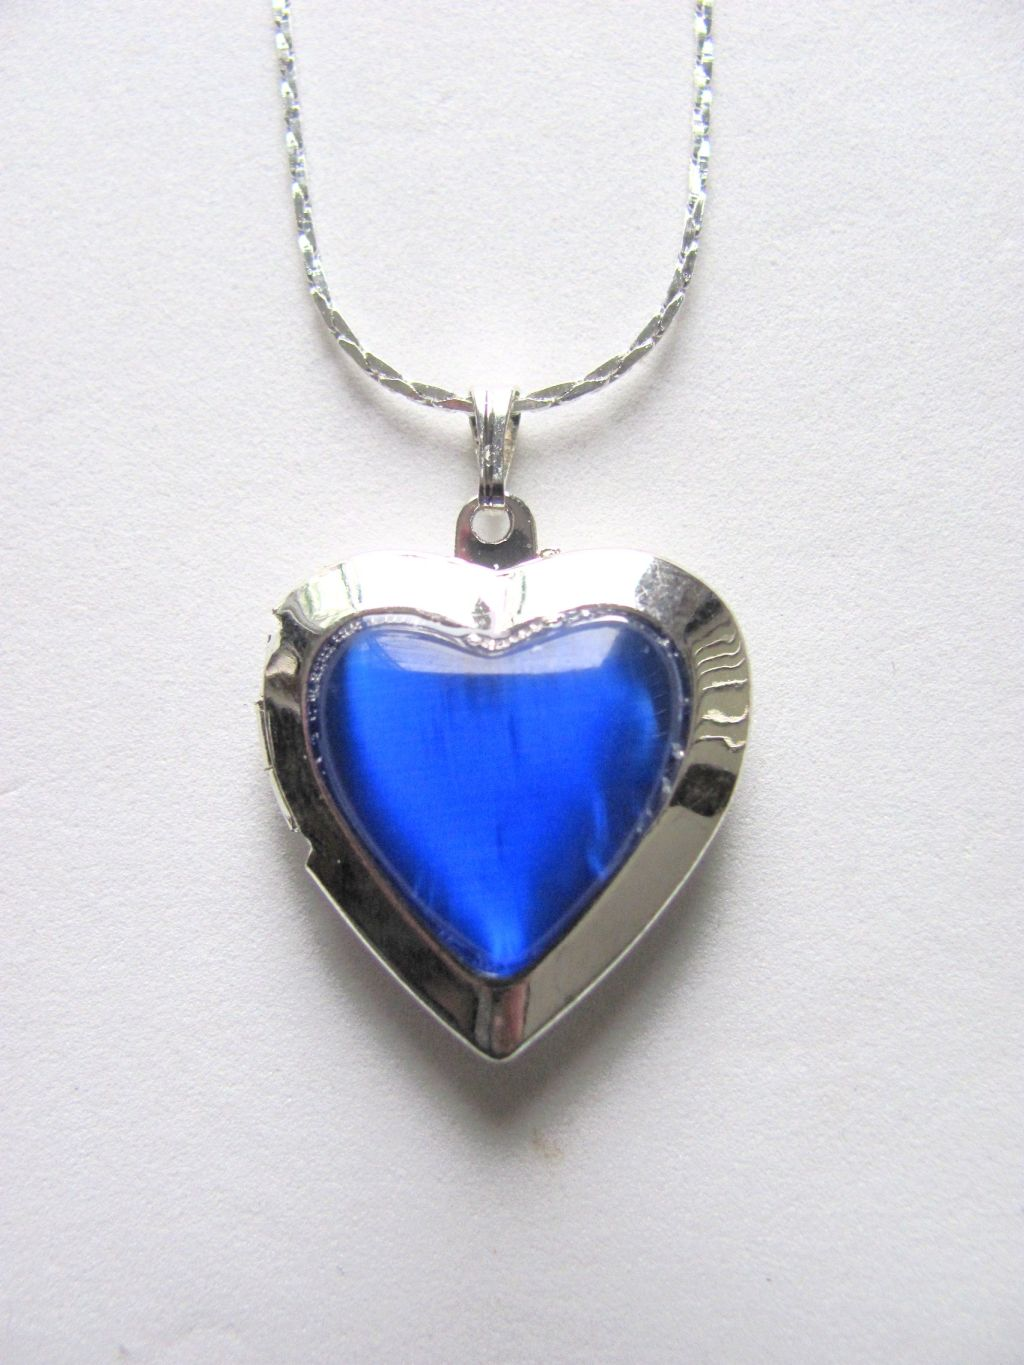 Navy Blue Heart Locket Photo Pendant Necklace, Silver Tone